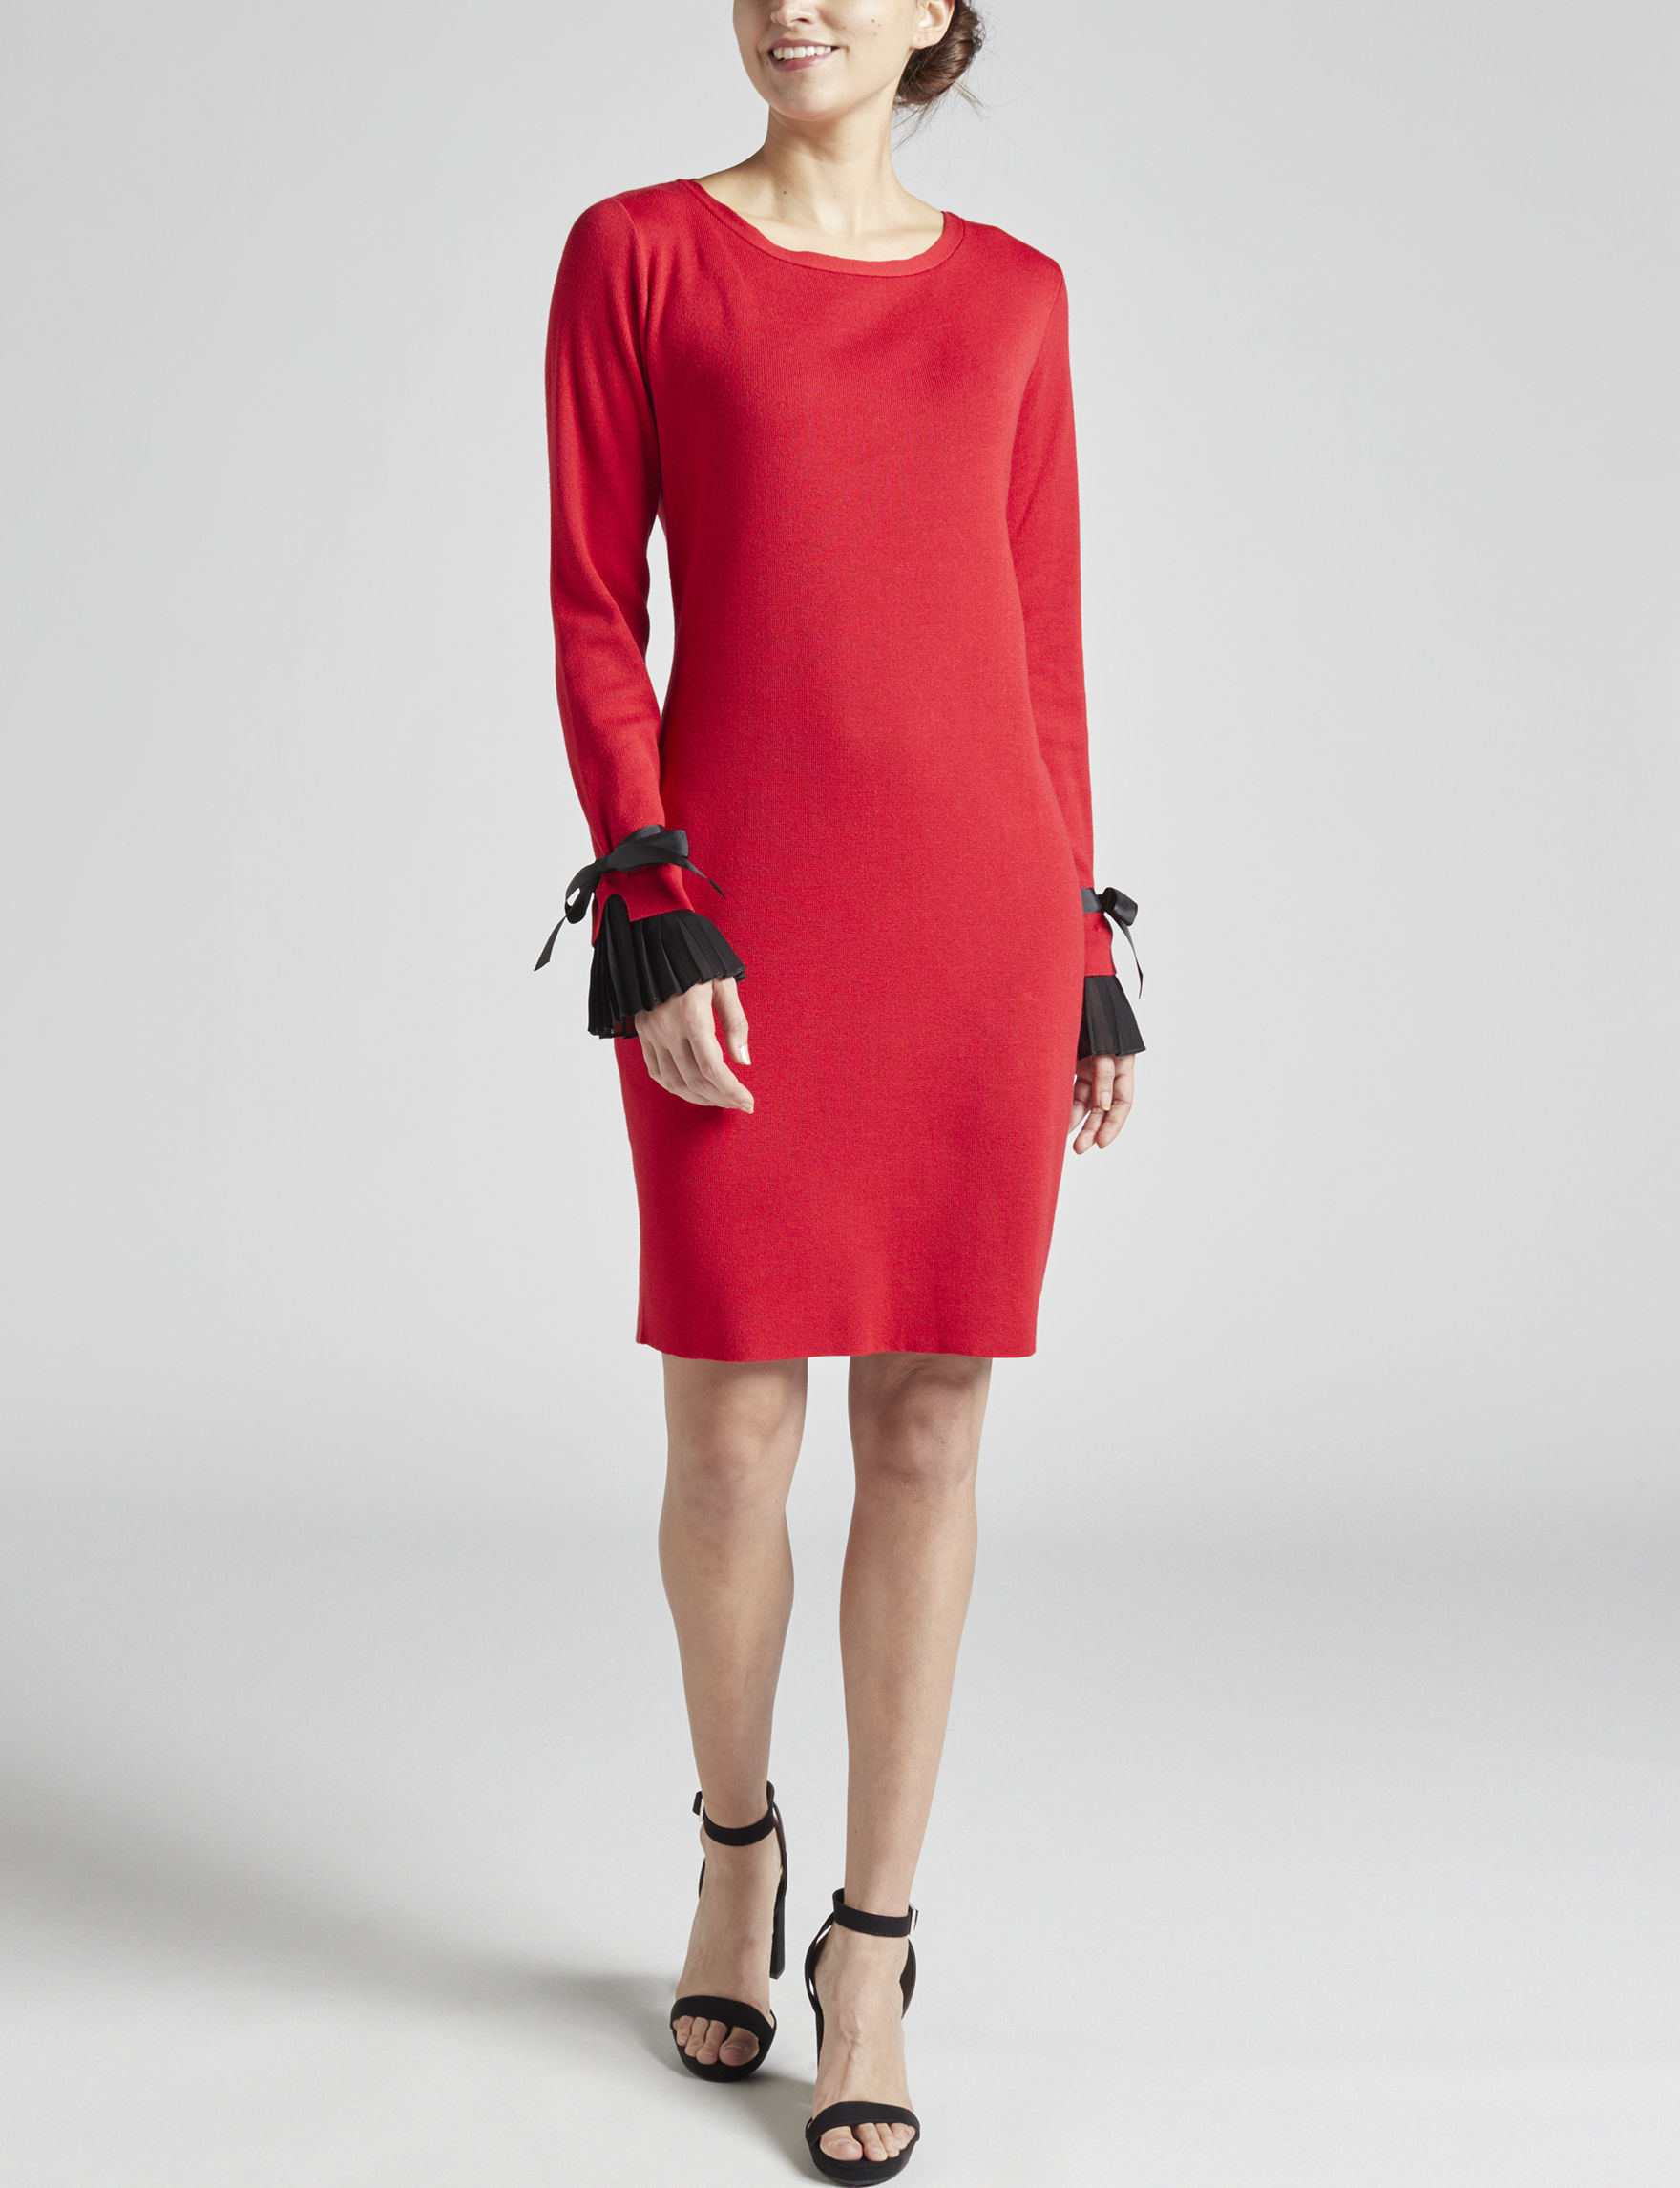 Harlow & Rose Red Everyday & Casual Sweater Dresses